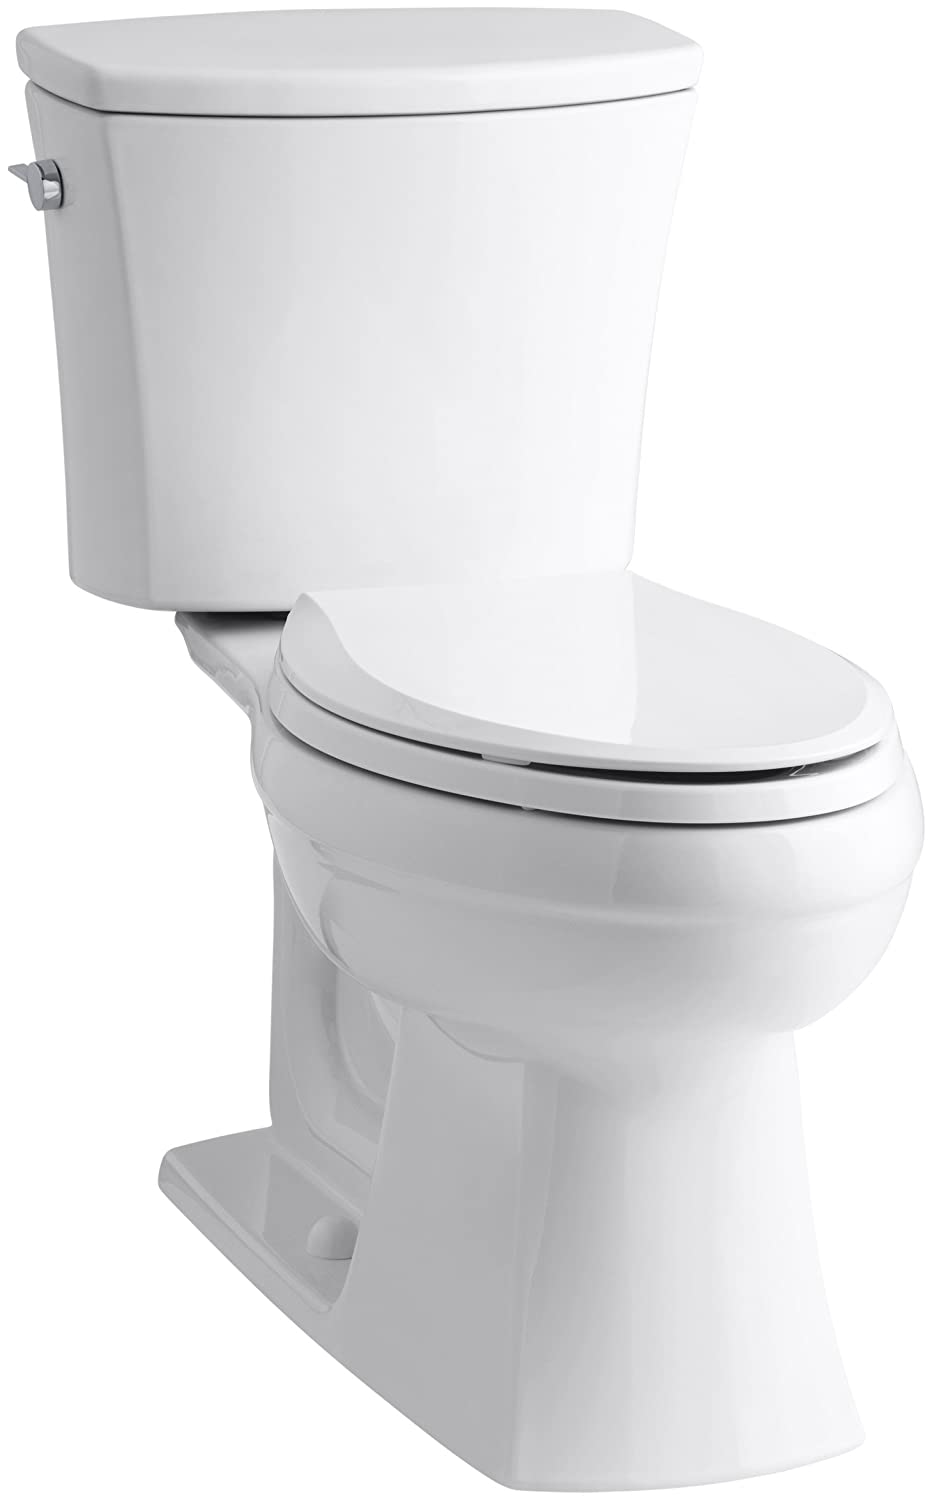 KOHLER K-3754-0 Kelston Comfort Height Two-Piece Elongated 1.6